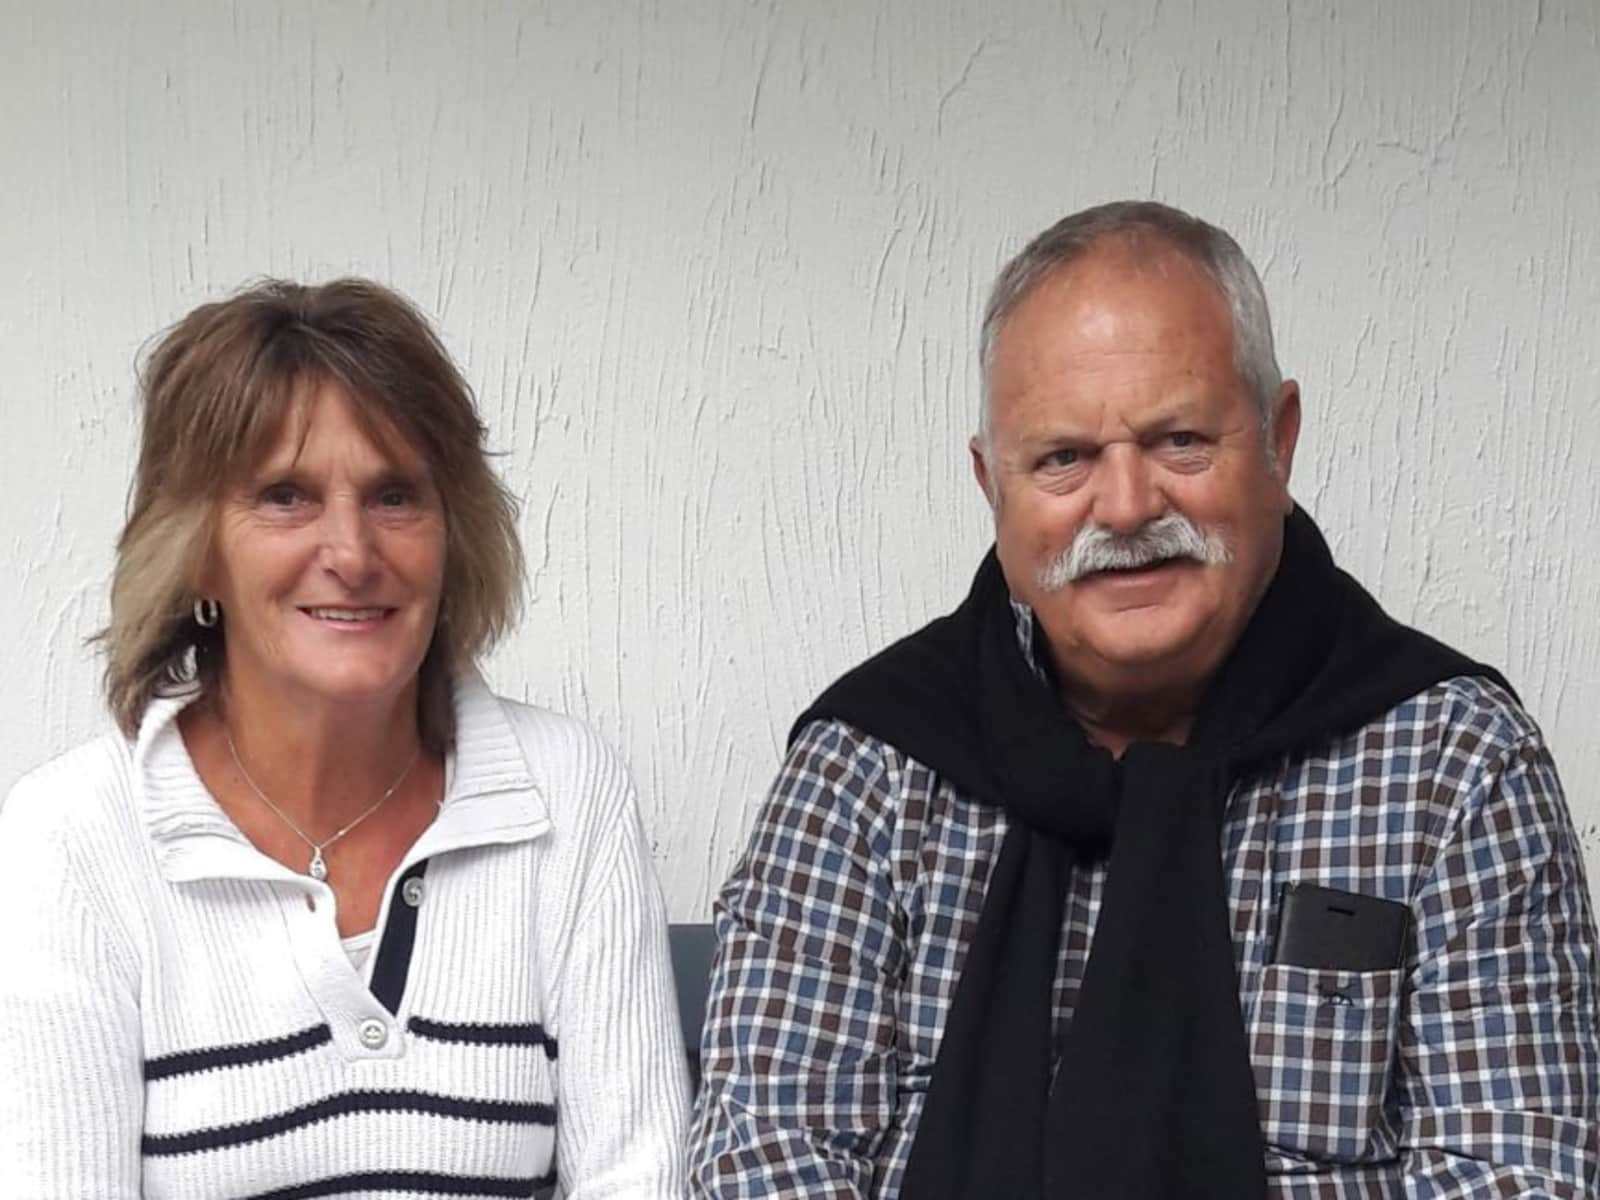 Denise & geoff & Denise from Christchurch, New Zealand